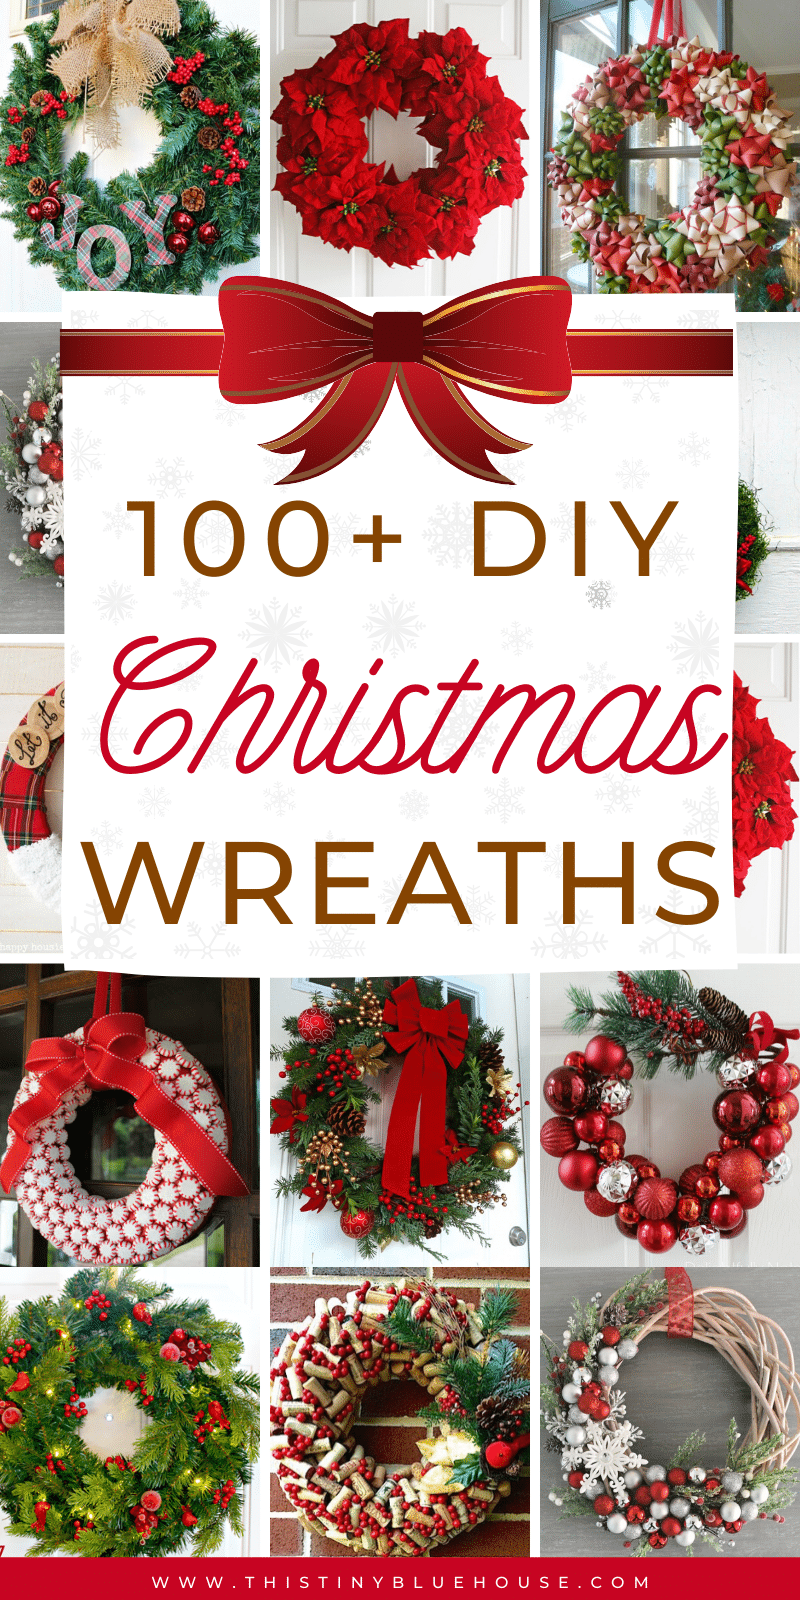 get your front door ready for the holidays with this ultimate collection of best cheap DIY Christmas Wreaths. With over 100 BEST holiday wreaths to choose from you're guaranteed to have the most festive door on the block. #DIYChristmasWreaths #DIYChristmasWreathsDollarStore #DIYChristmasWreathsDecorations #DIYChristmasWreathsEasy #DIYChristmasWreathsIdeas #DIYChristmasWreathsCheap